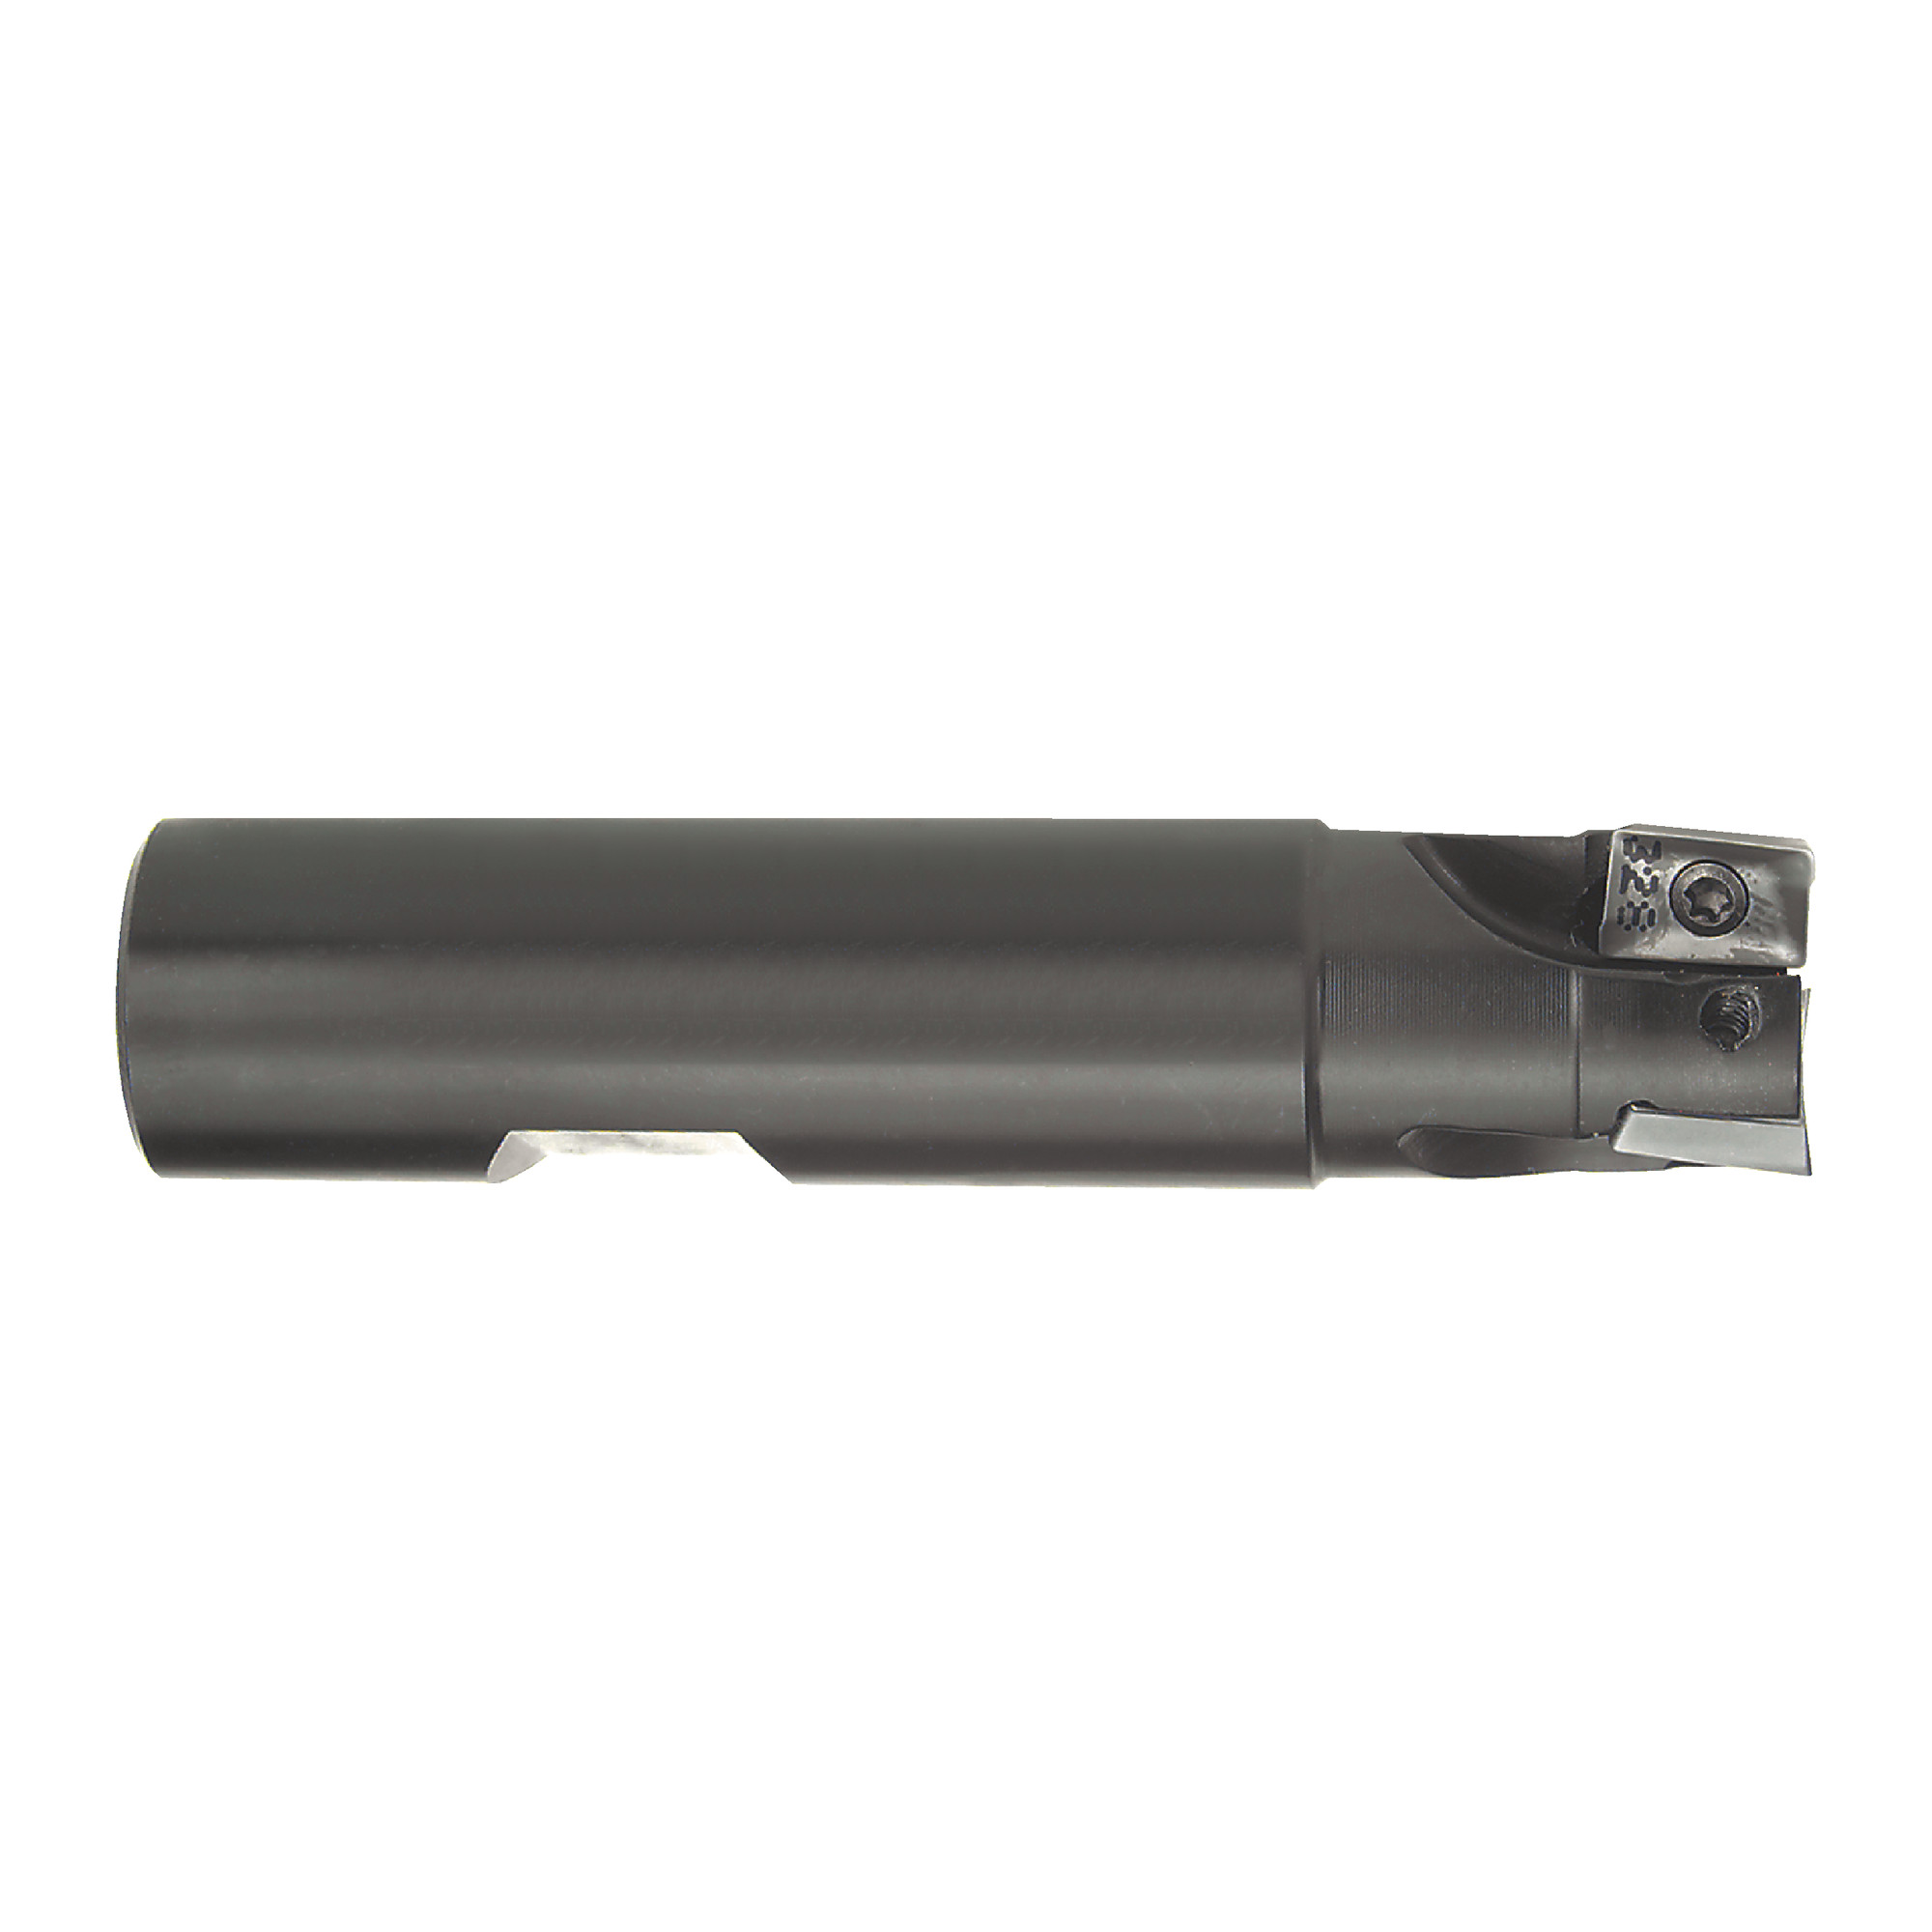 """ISCAR - HM90 E90A D1.00-4-W.75 / 1.000"""" End Mill for APKT1003 Inserts / Right Hand"""